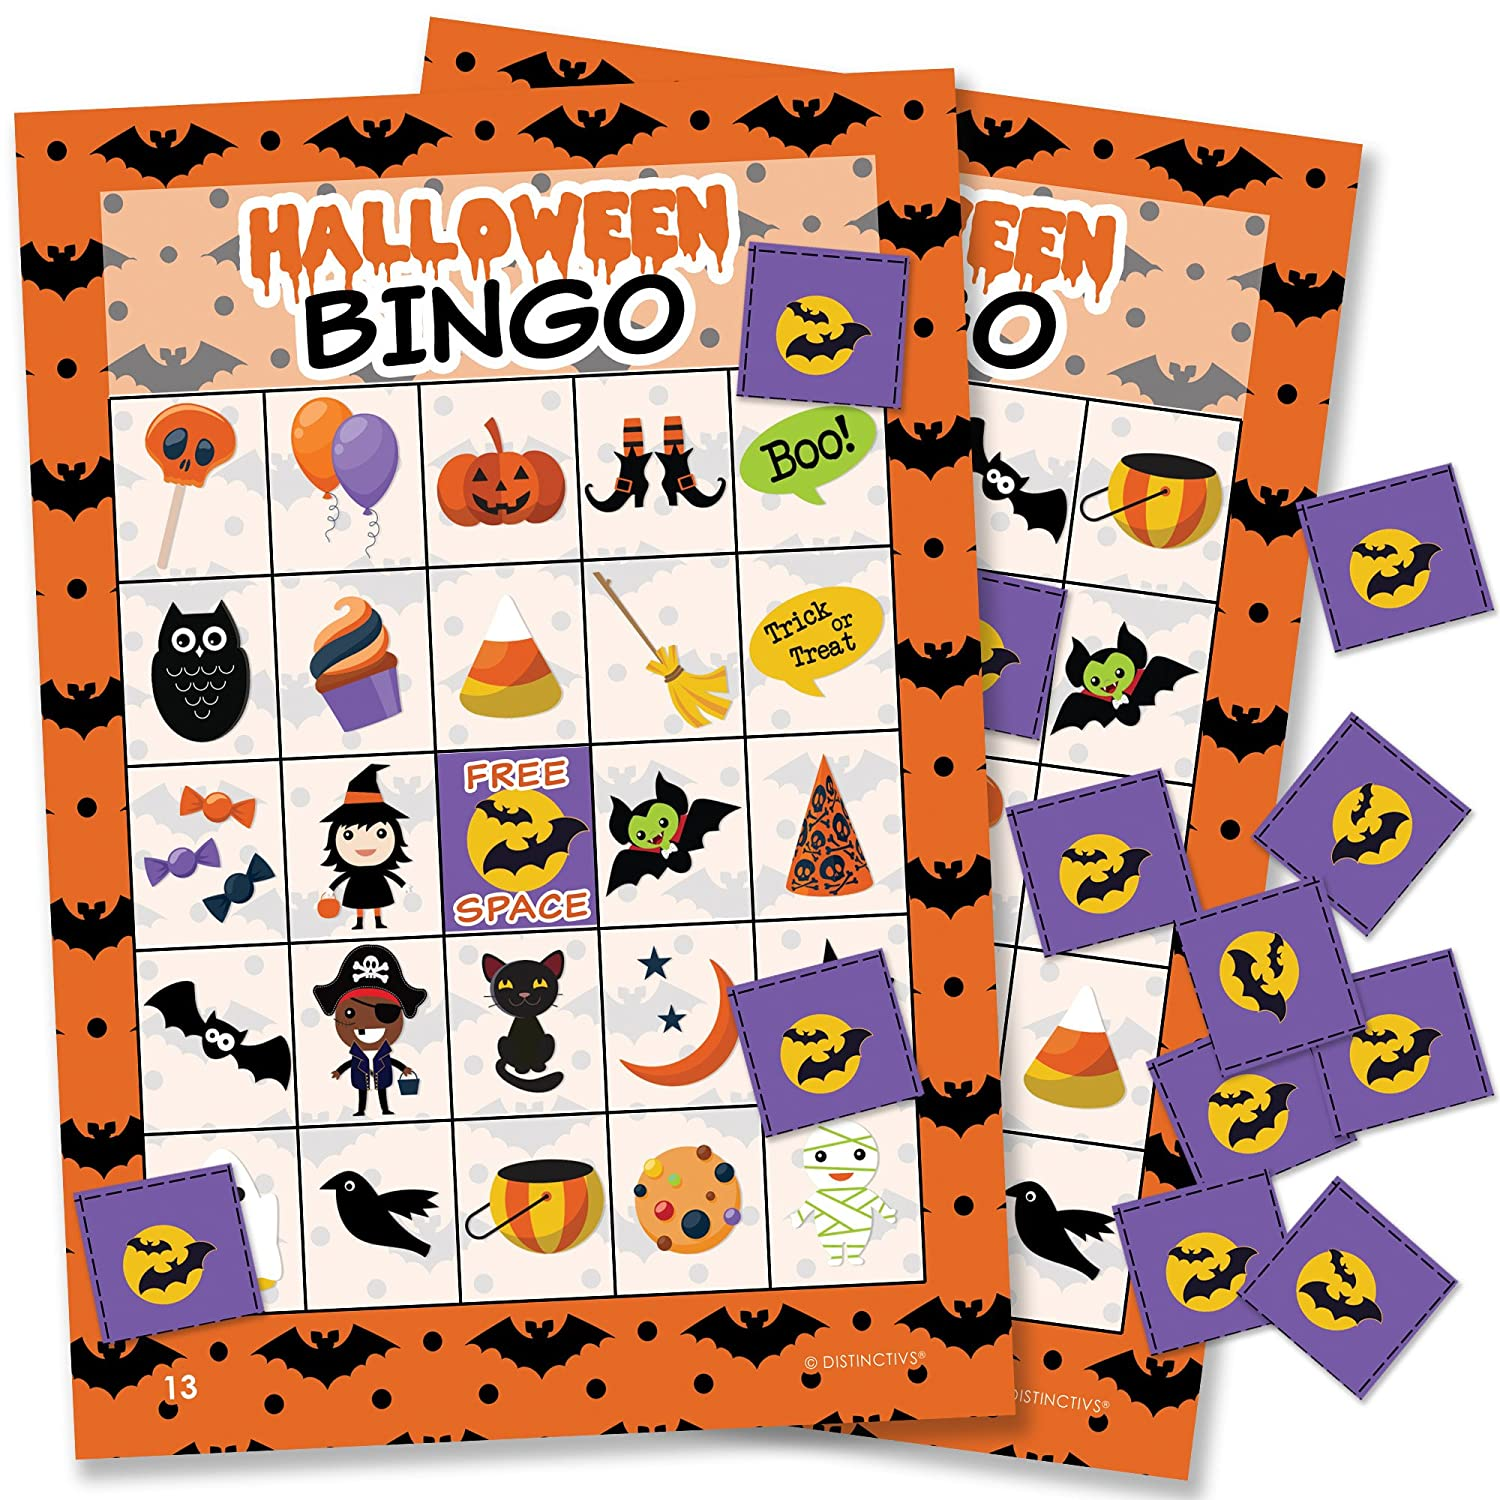 graphic relating to Printable Halloween Bingo Card known as Halloween Bingo Video game for Little ones - 24 Avid gamers